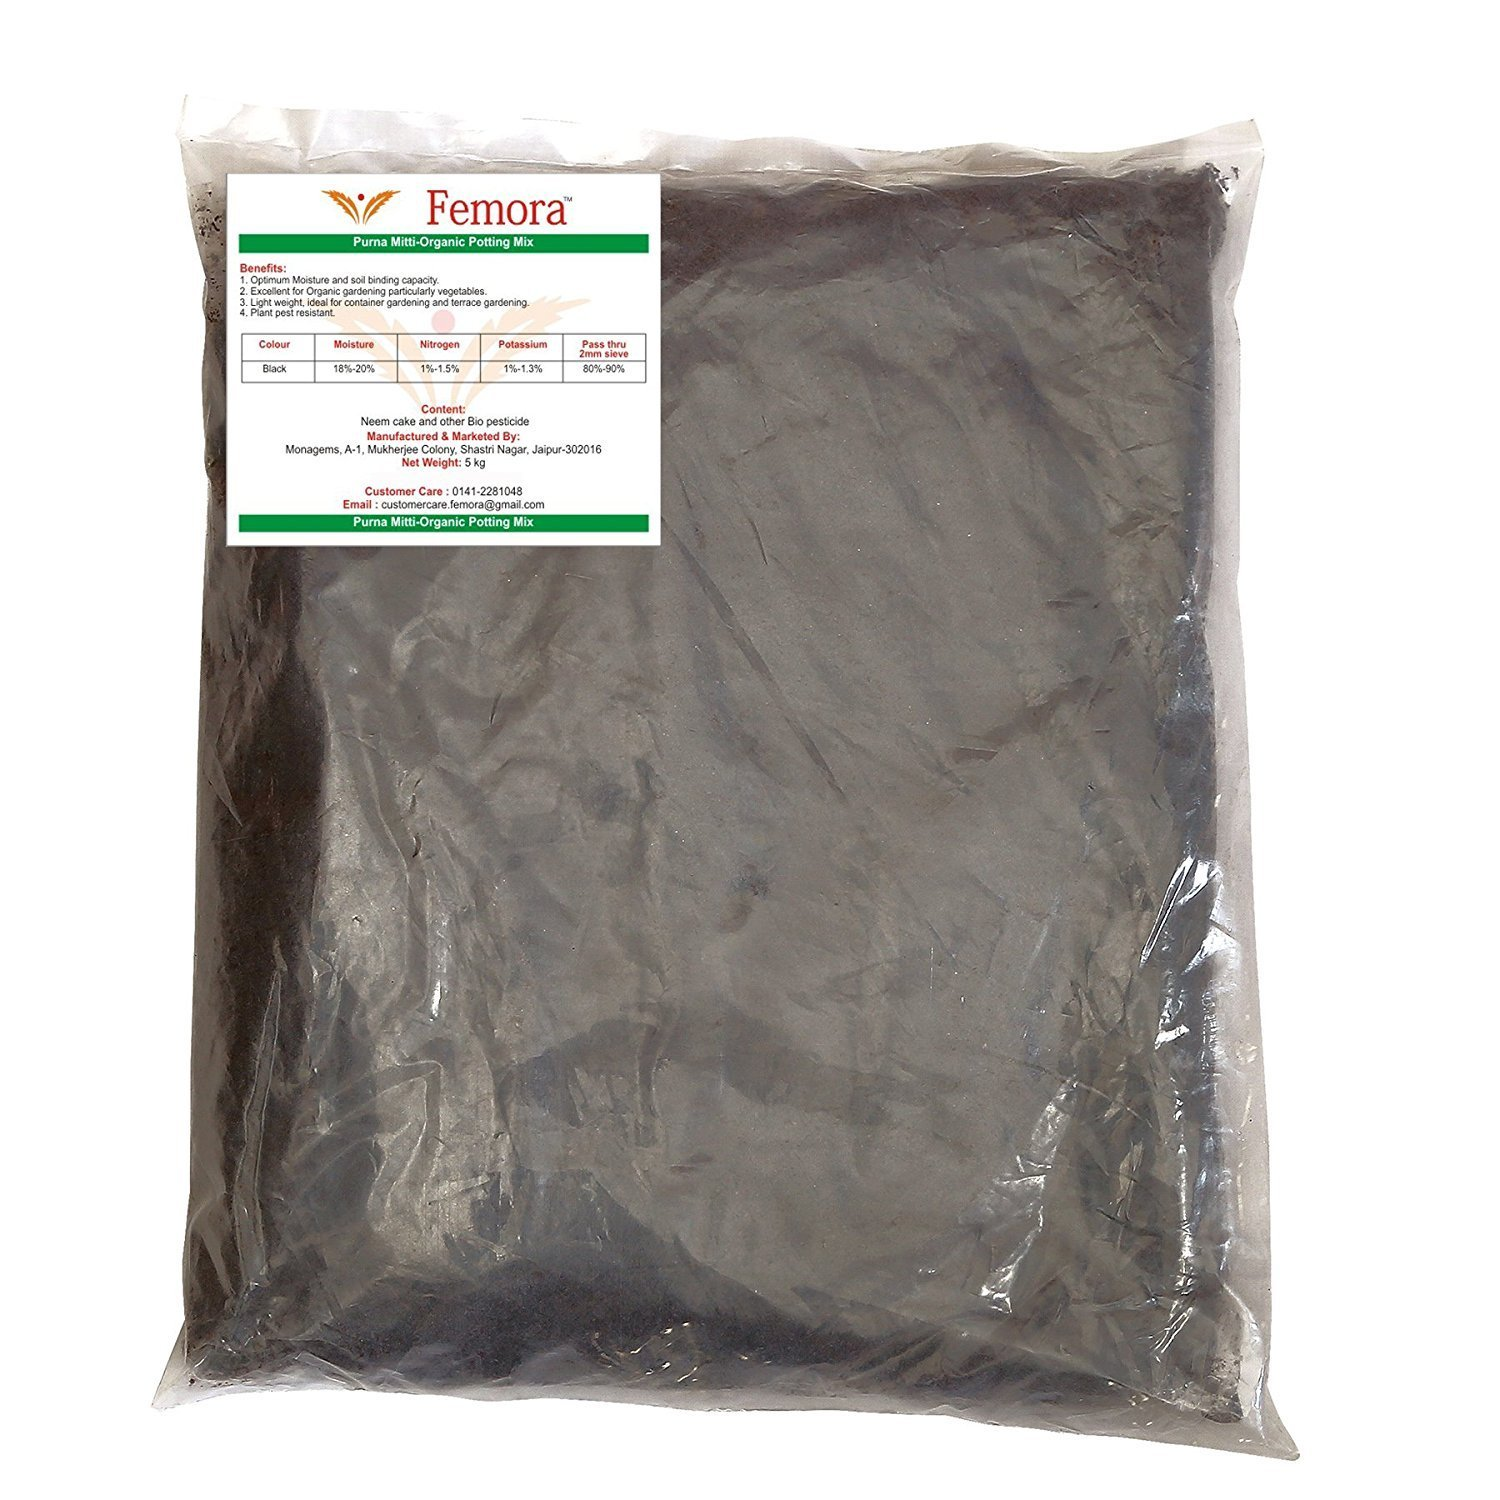 Femora All Purpose Premium Potting Mix / Pot Mix / Garden Manure / Ready To Plant Purani Mitti- 5 Kg X 2 = 10Kg